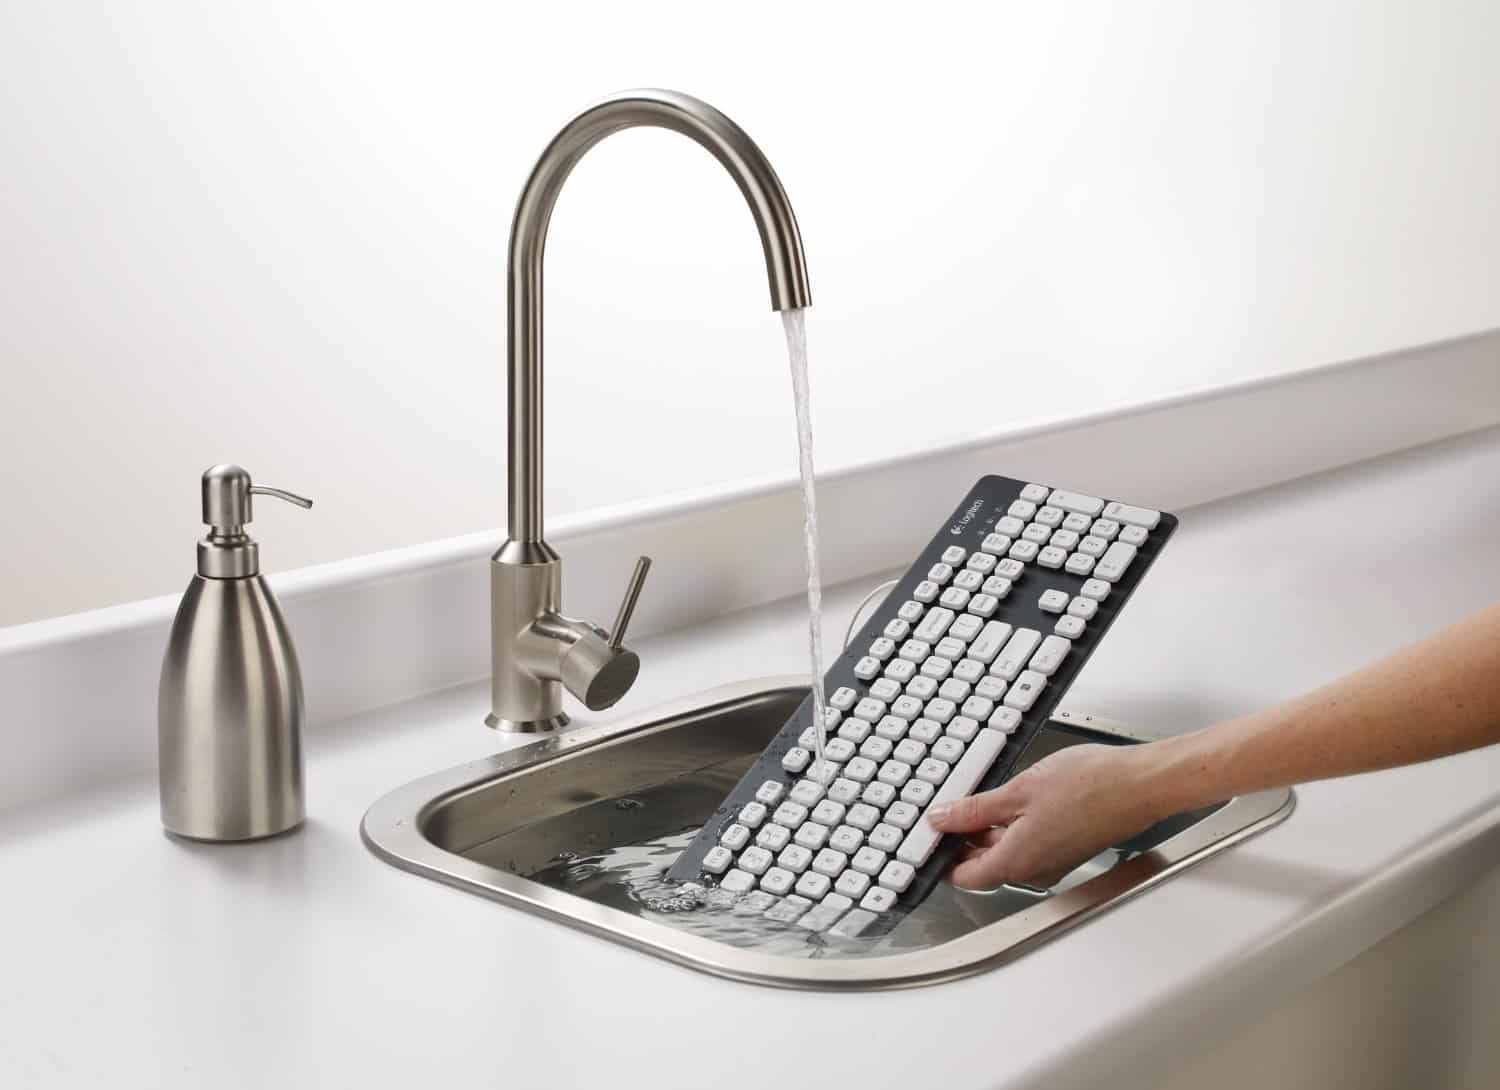 Logitech Washable Keyboard Interesting Product Waterproof Gadget